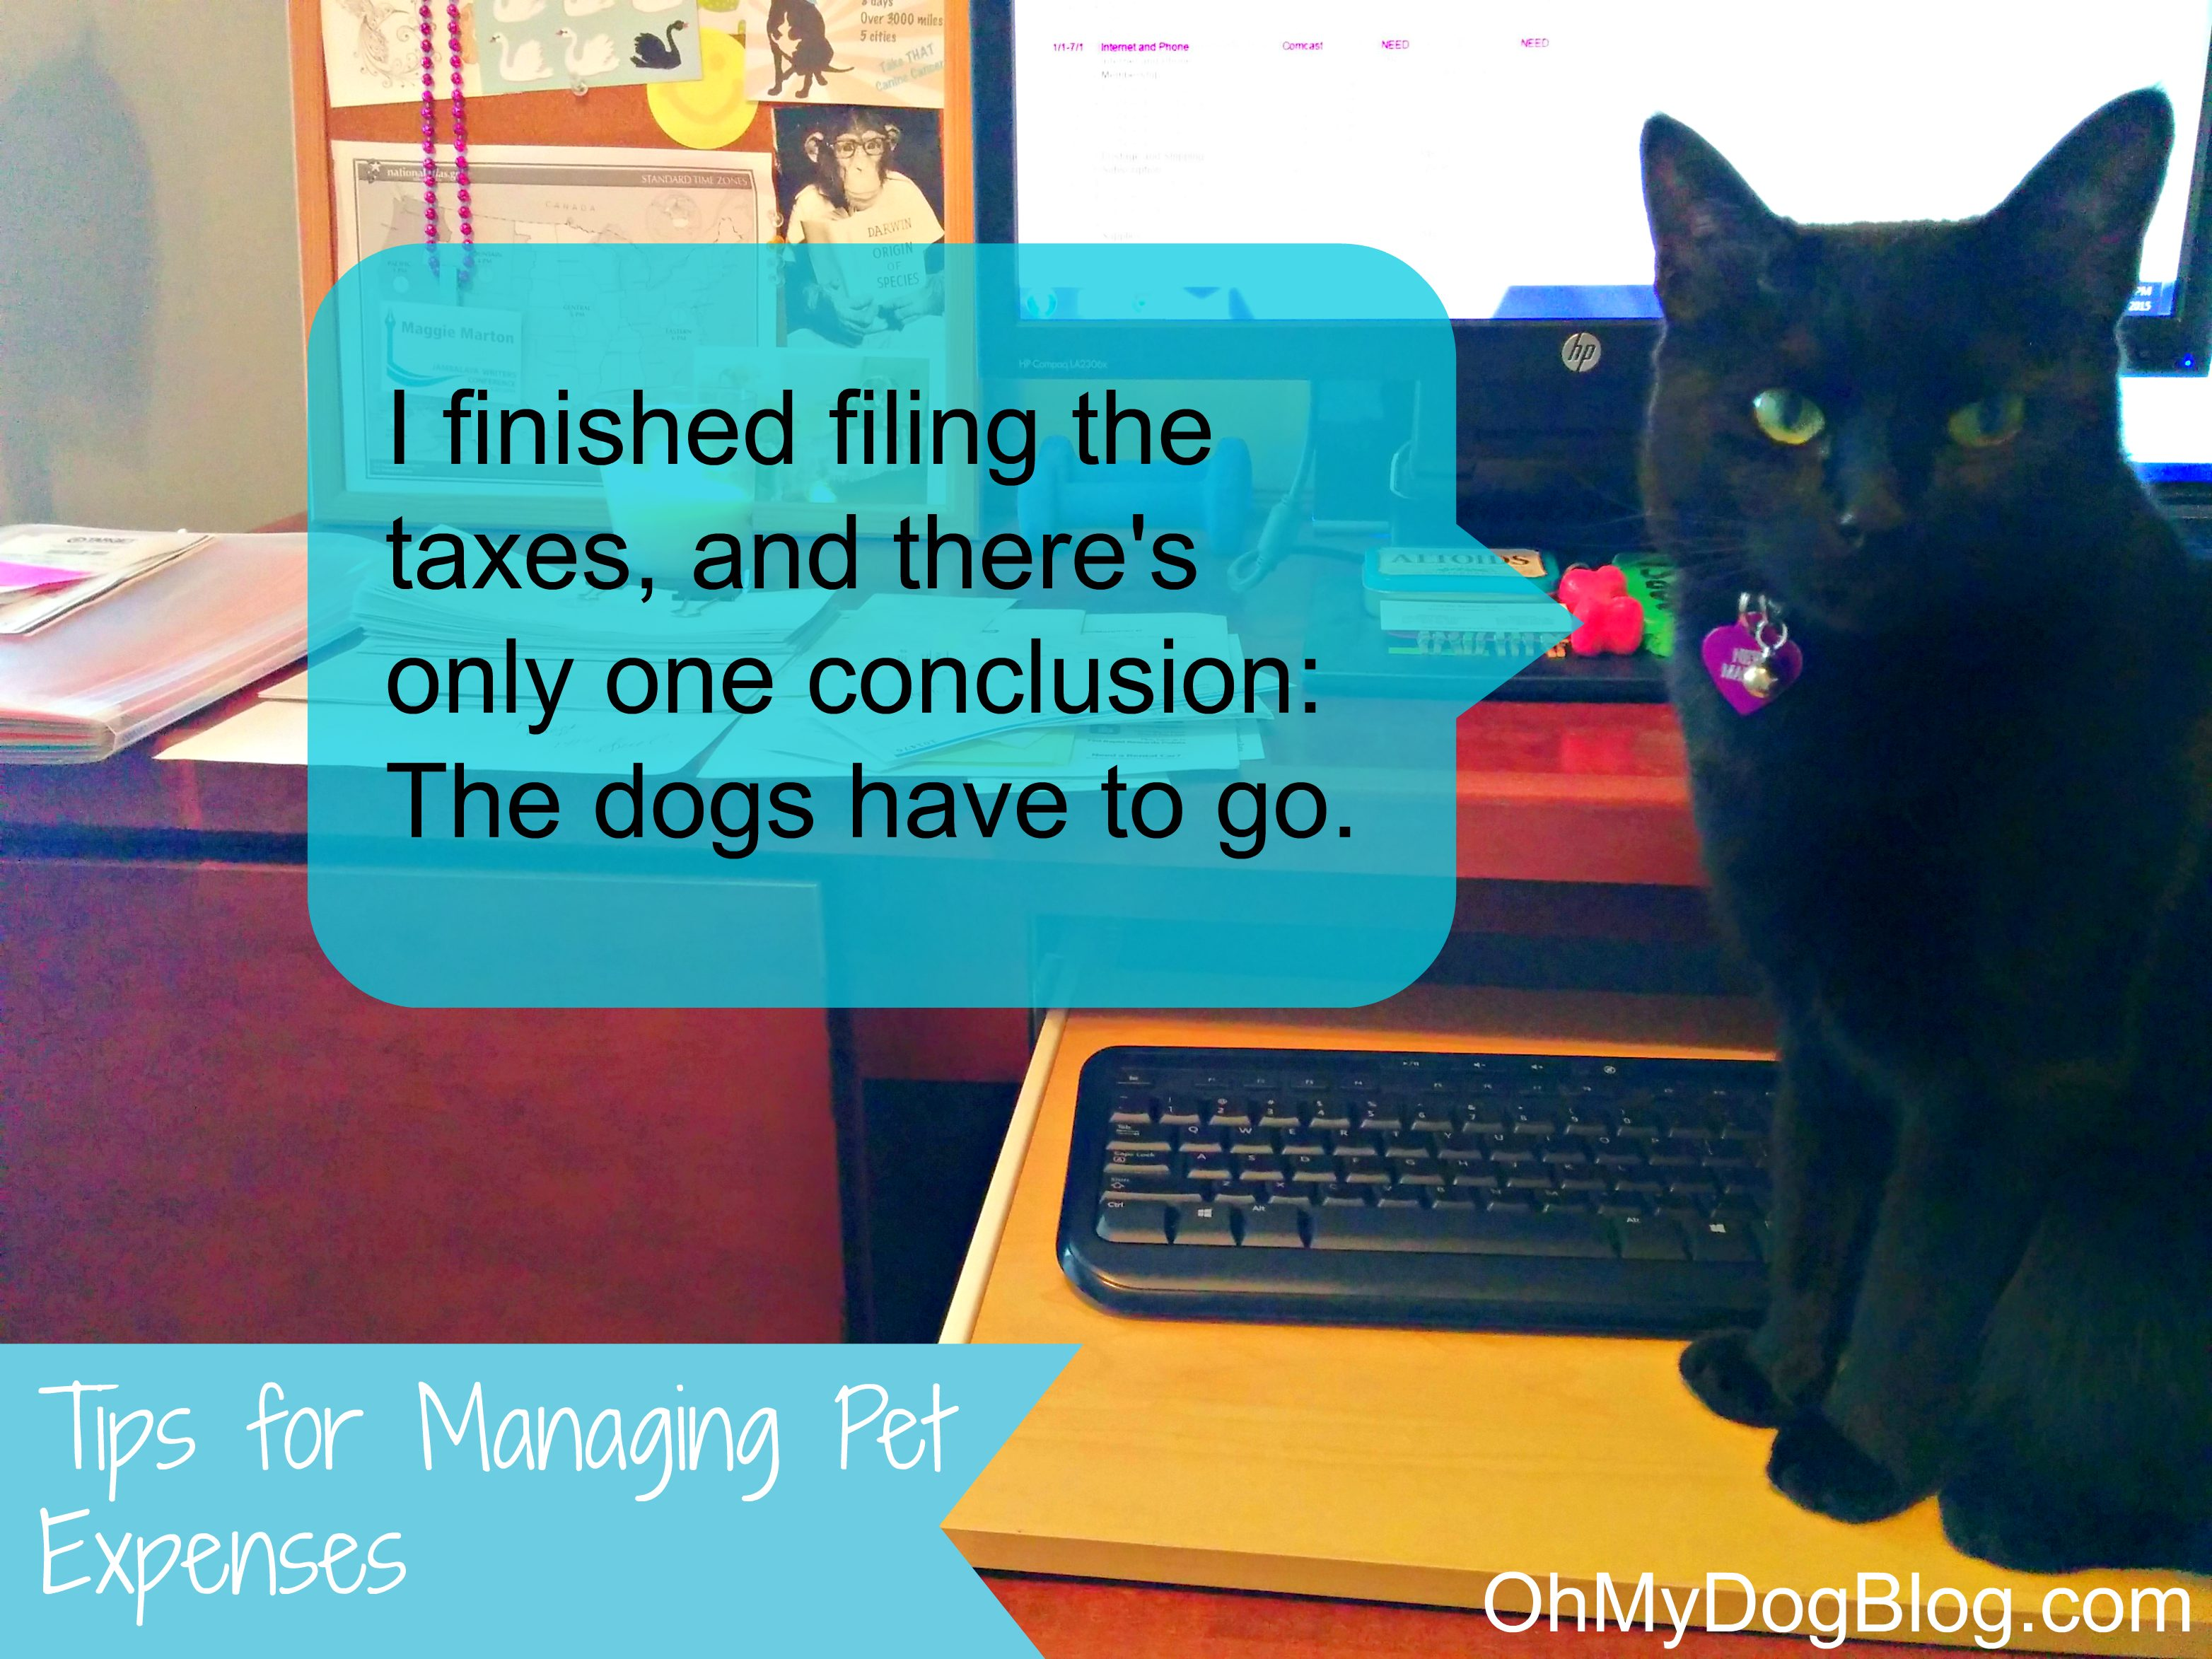 Tips for Managing Pet Expenses